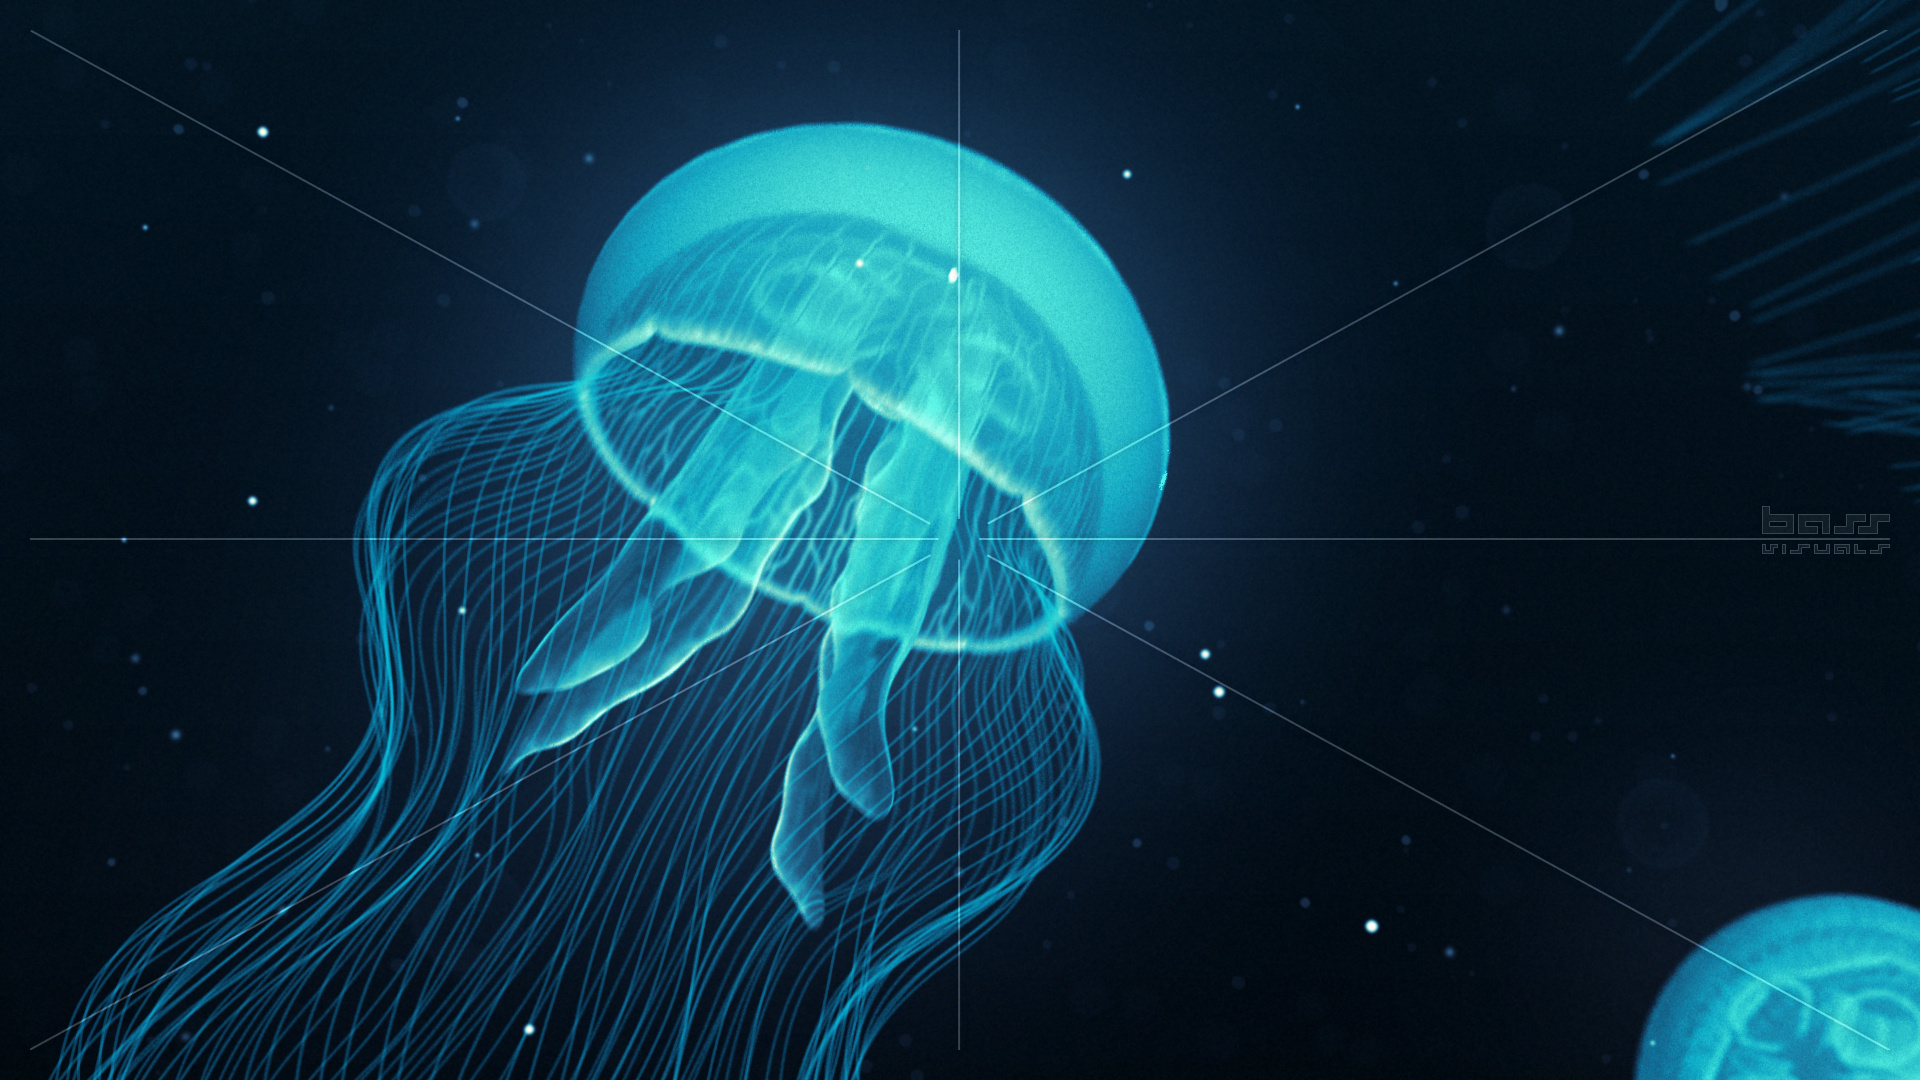 Abyss bass visuals - Jellyfish hd images ...